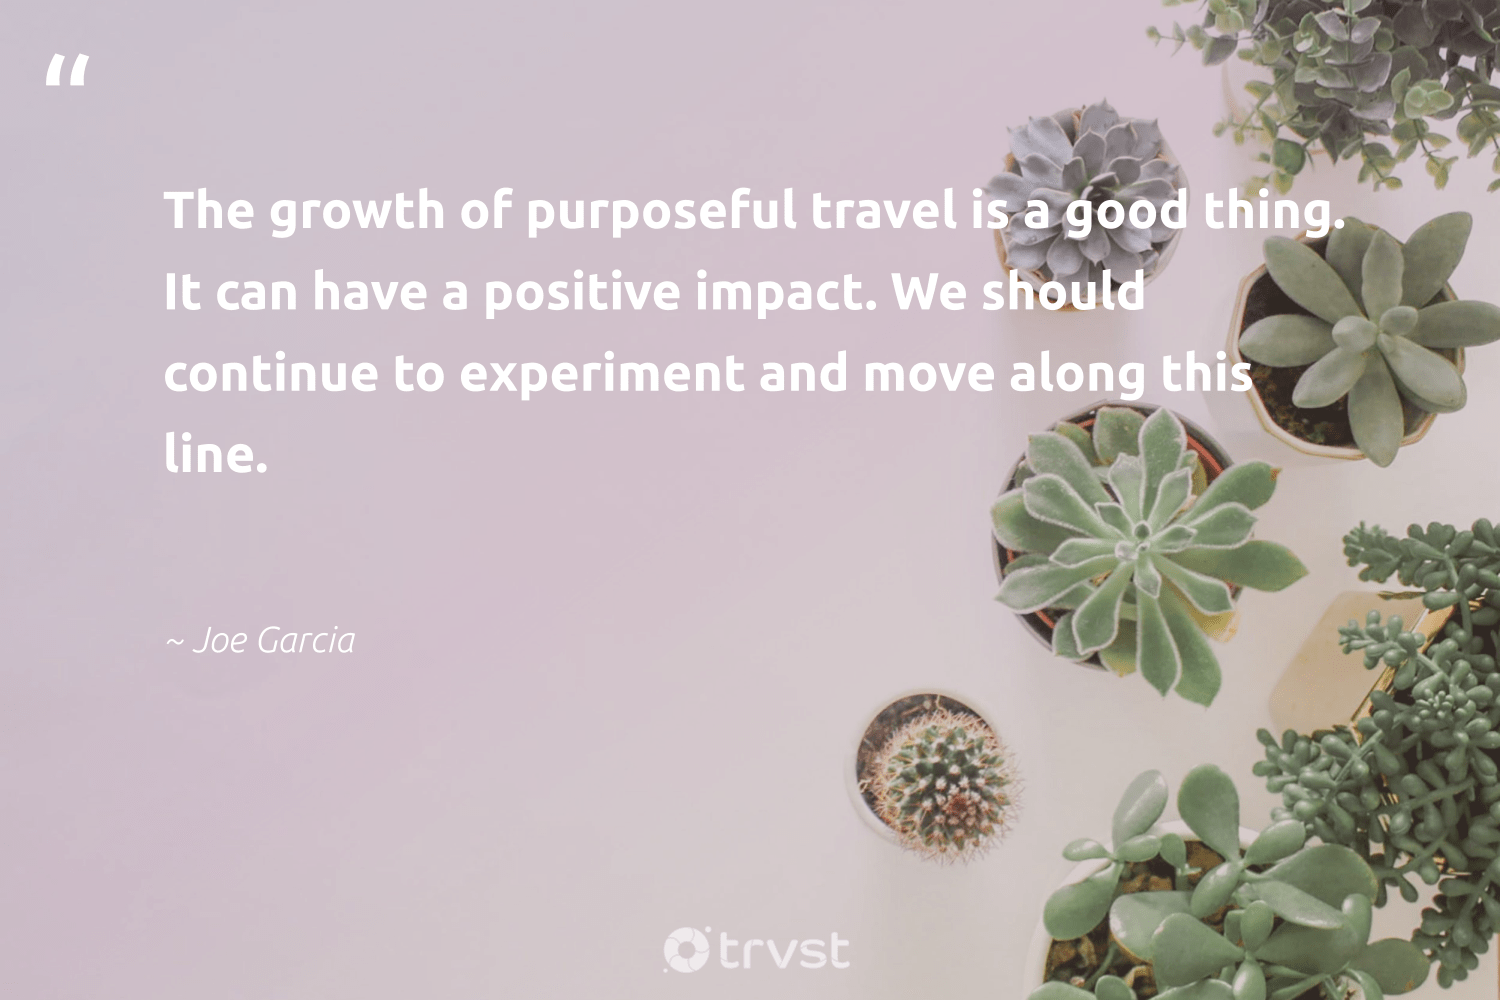 """""""The growth of purposeful travel is a good thing. It can have a positive impact. We should continue to experiment and move along this line.""""  - Joe Garcia #trvst #quotes #impact #travel #shellfish #ethicalbusiness #invertebrate #thinkgreen #underwaterphotography #giveback #flowers #dosomething"""